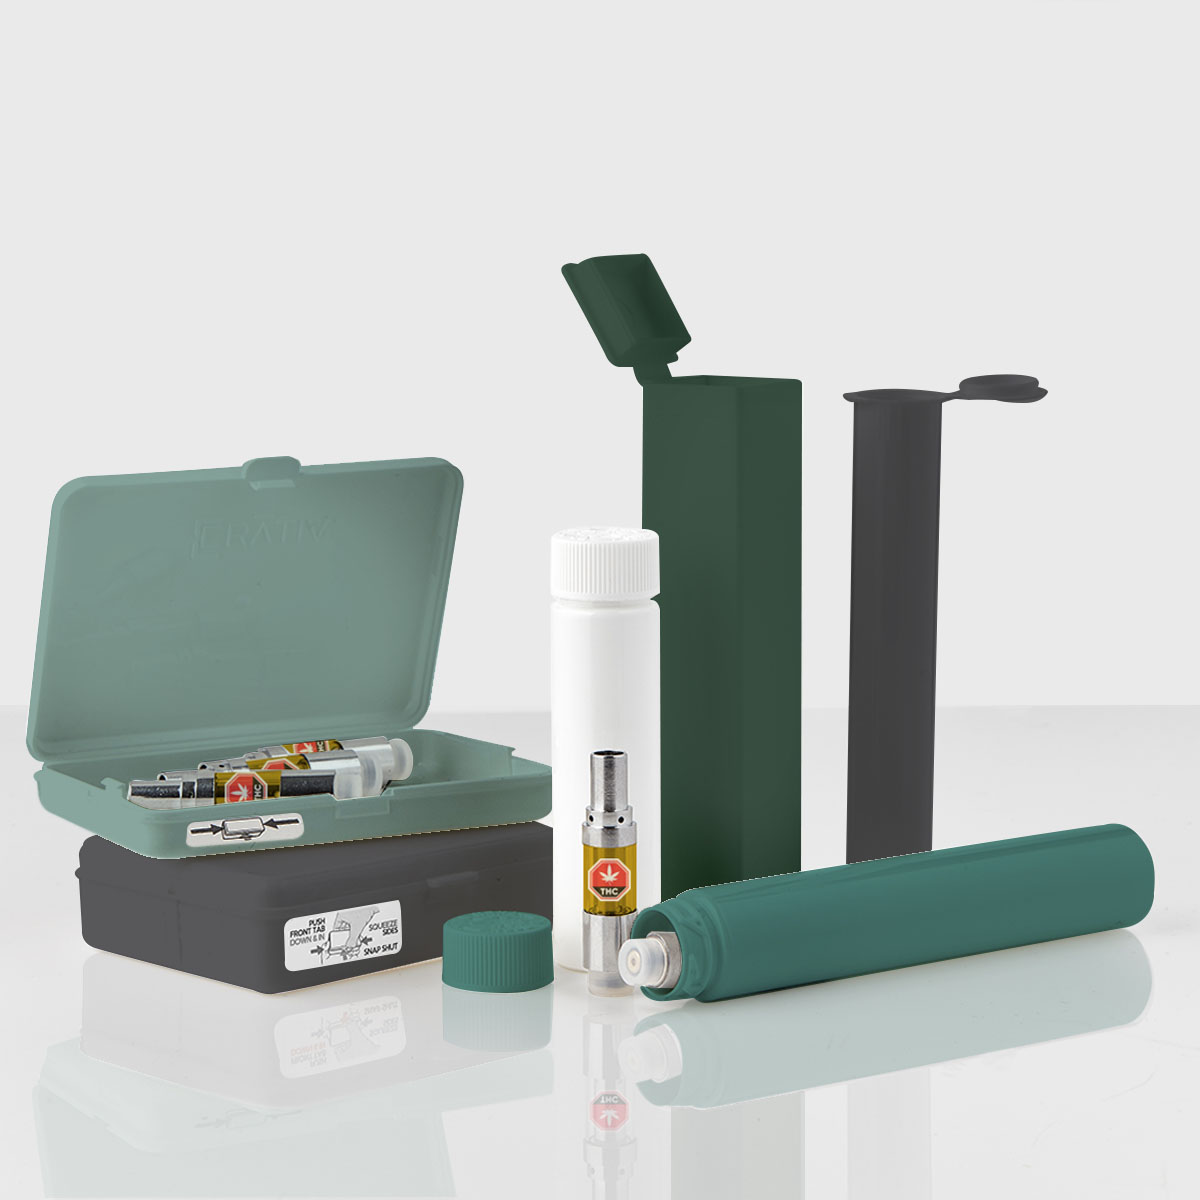 Unique Child-Resistant Packaging Solutions for Single and Multi-Pack Formats for prerolls, vape, etc.